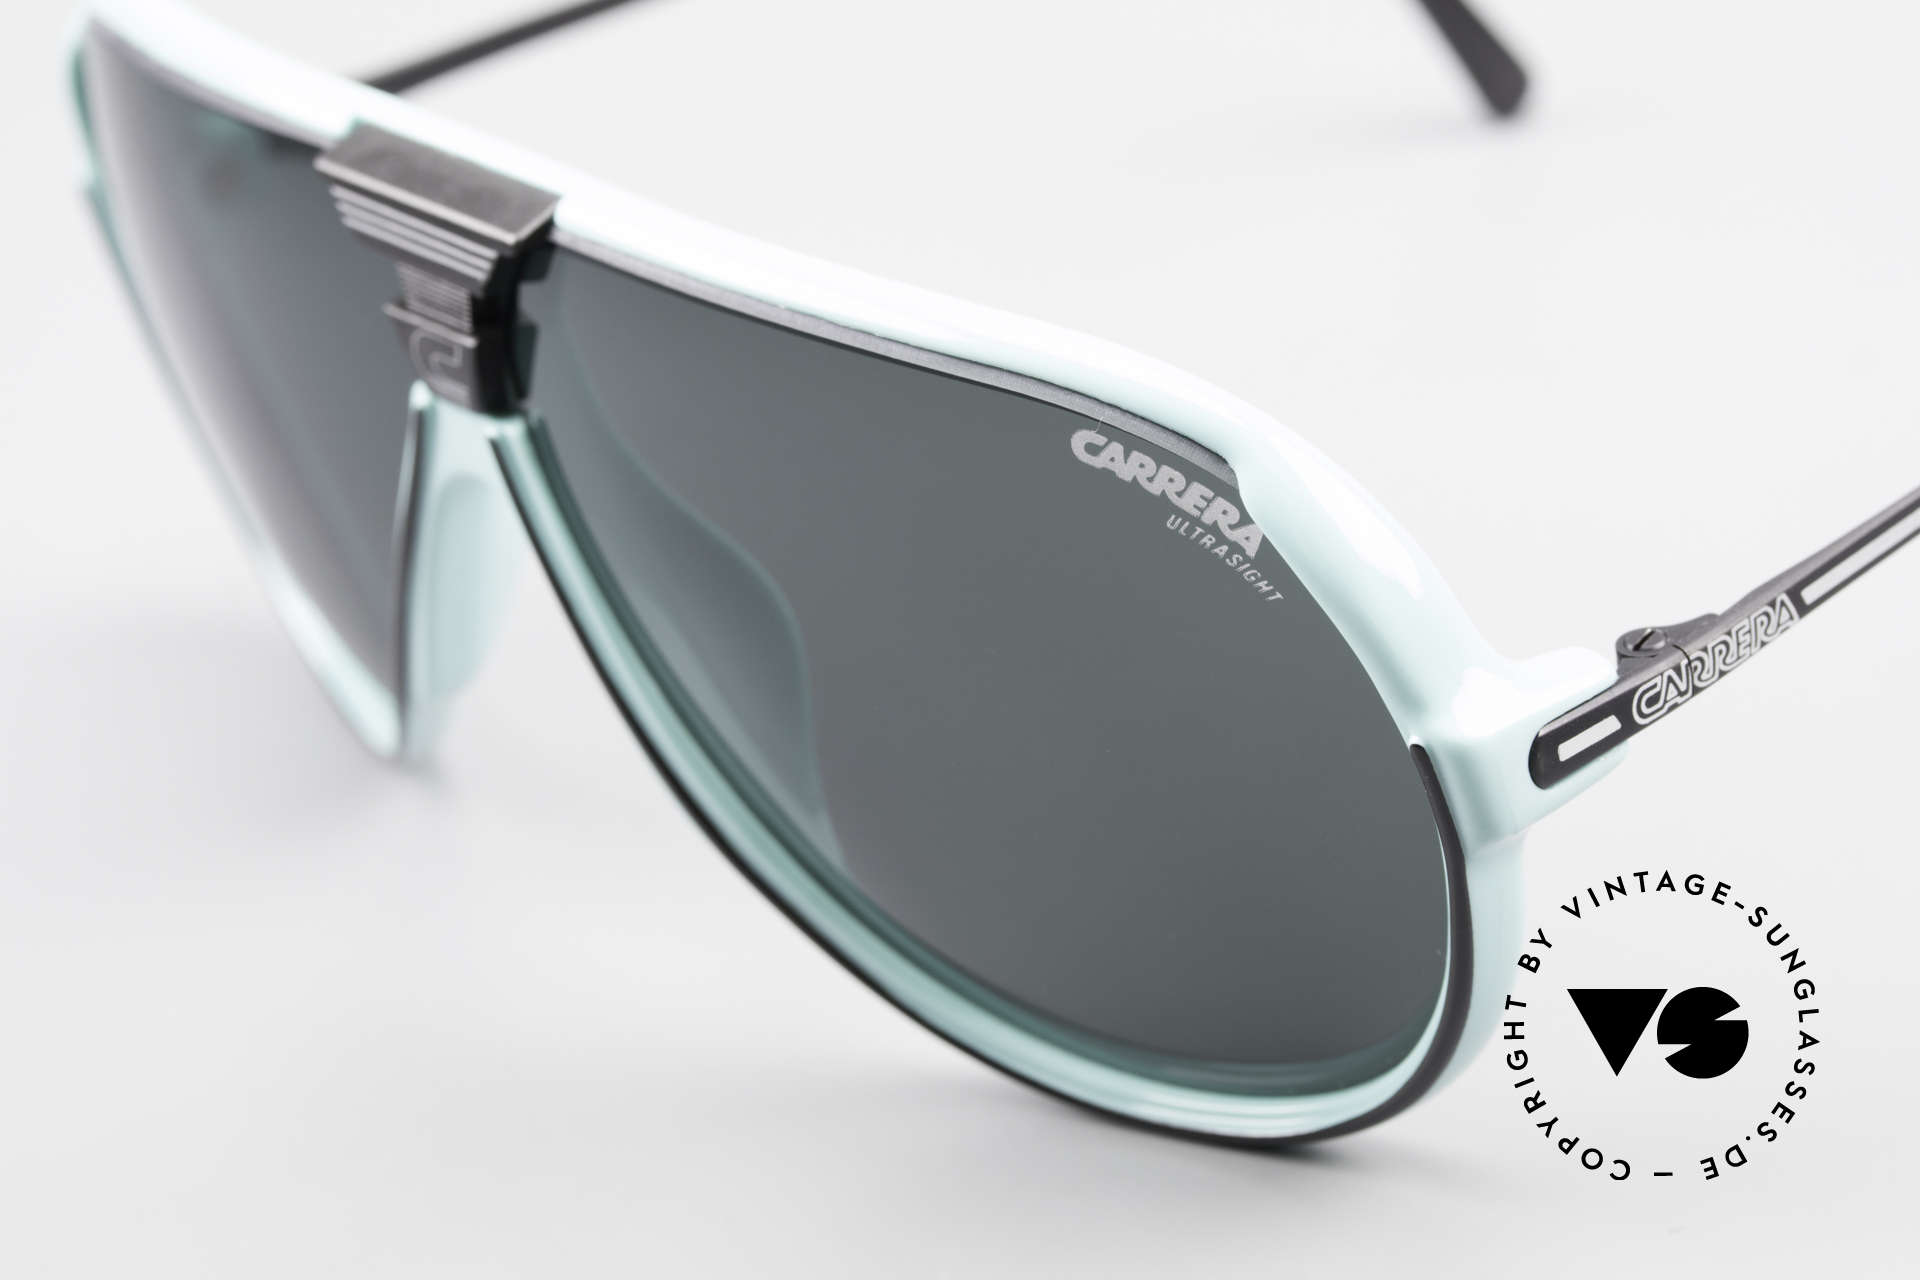 Carrera 5593 80's Sports Sunglasses Aviator, a symbiosis of sport and fashionable lifestyle!, Made for Men